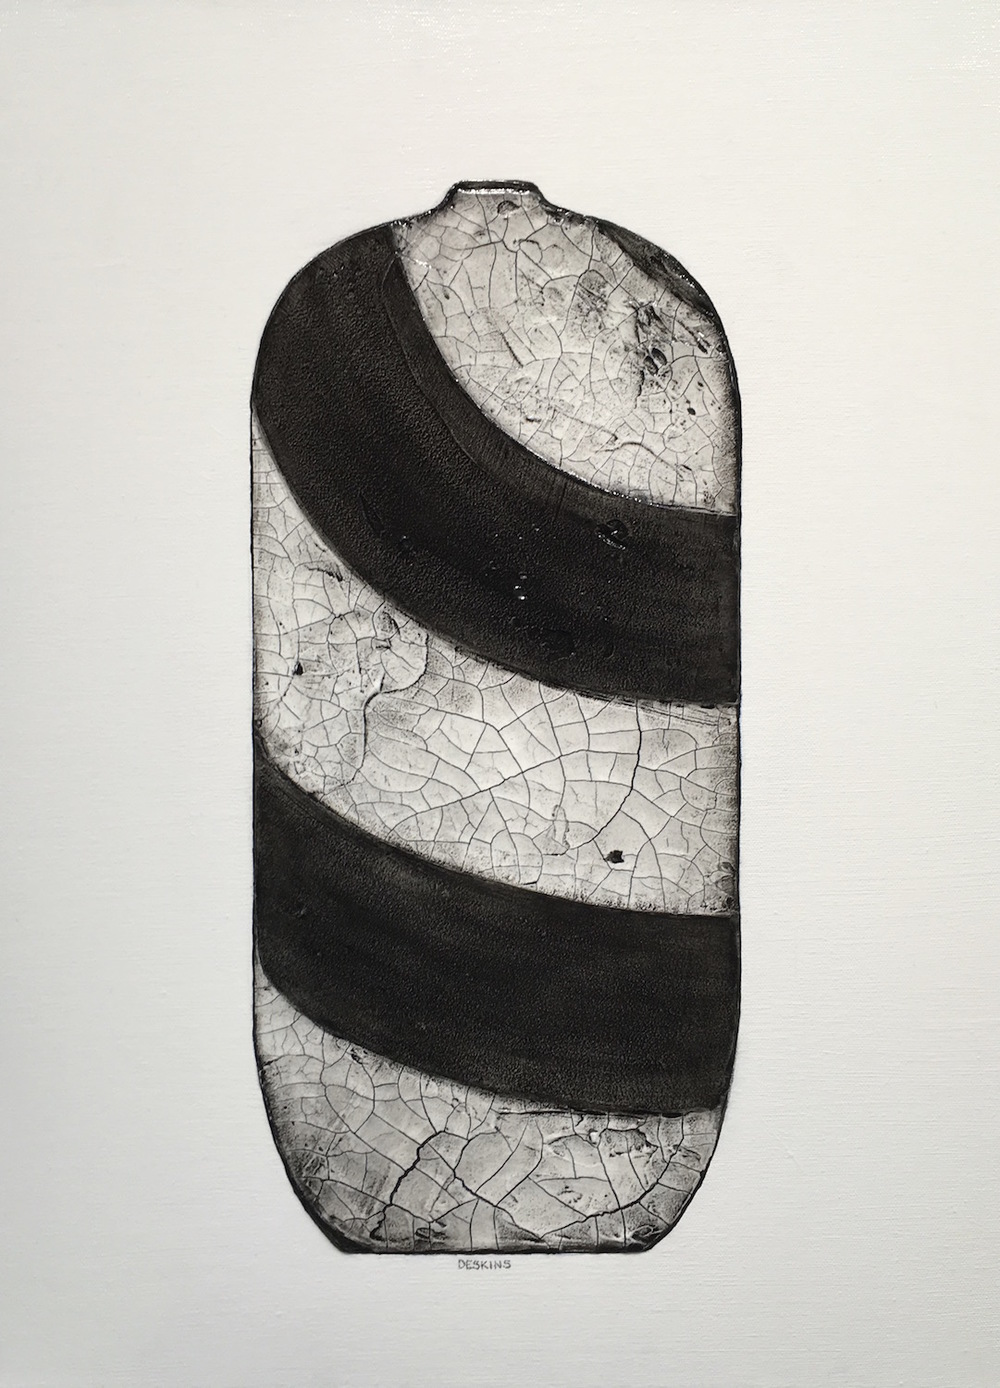 Painting of raku pottery painted in gray and black hanging on a wall